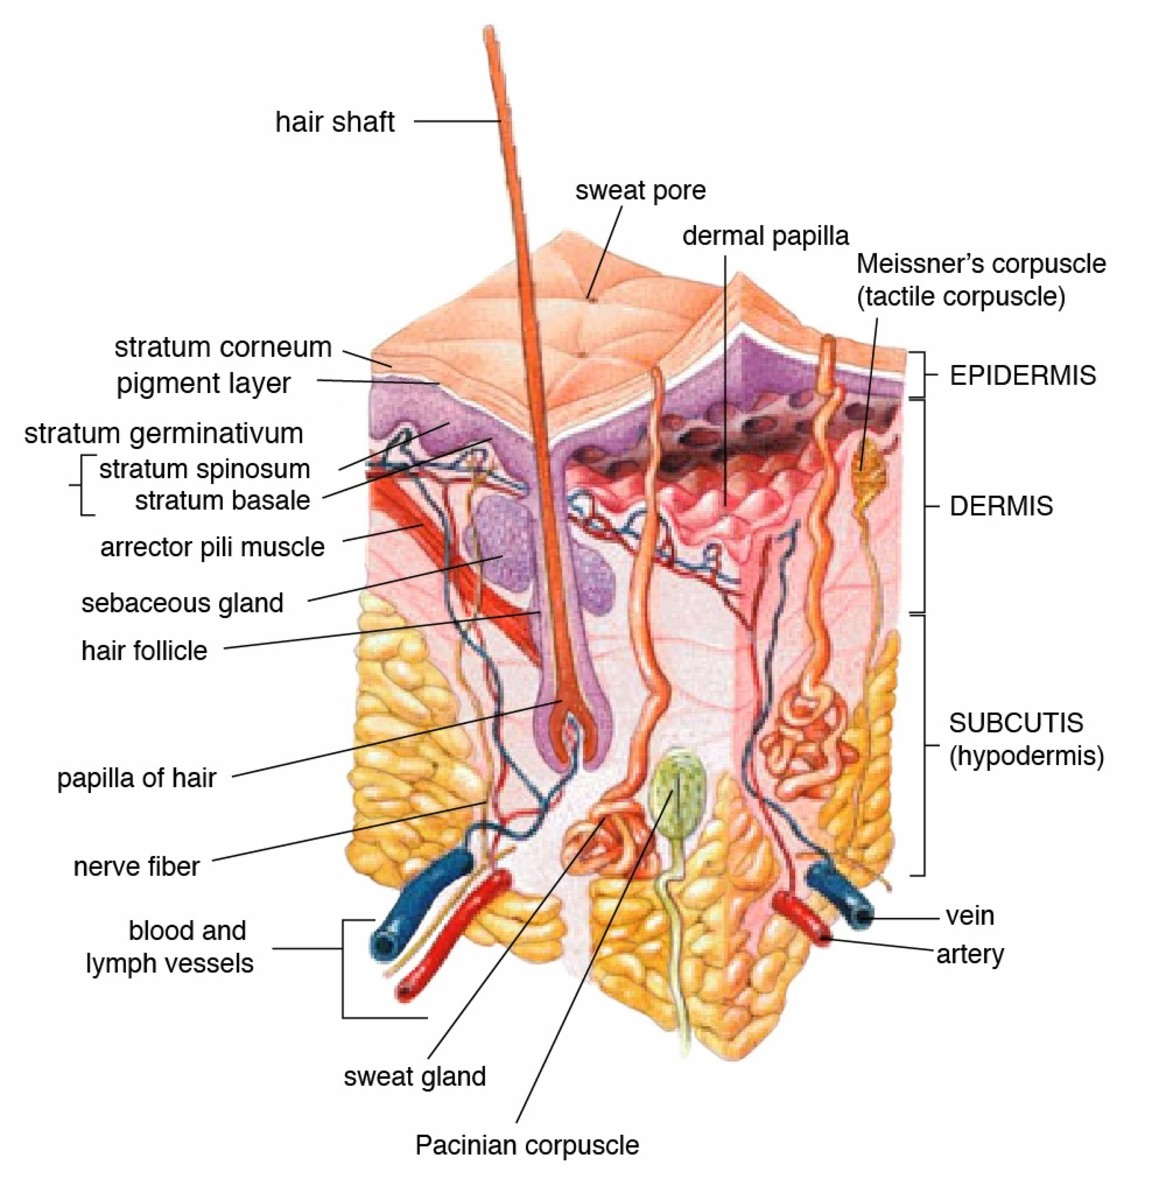 The epidermis of the skin is continually being shed from the body and renewed.